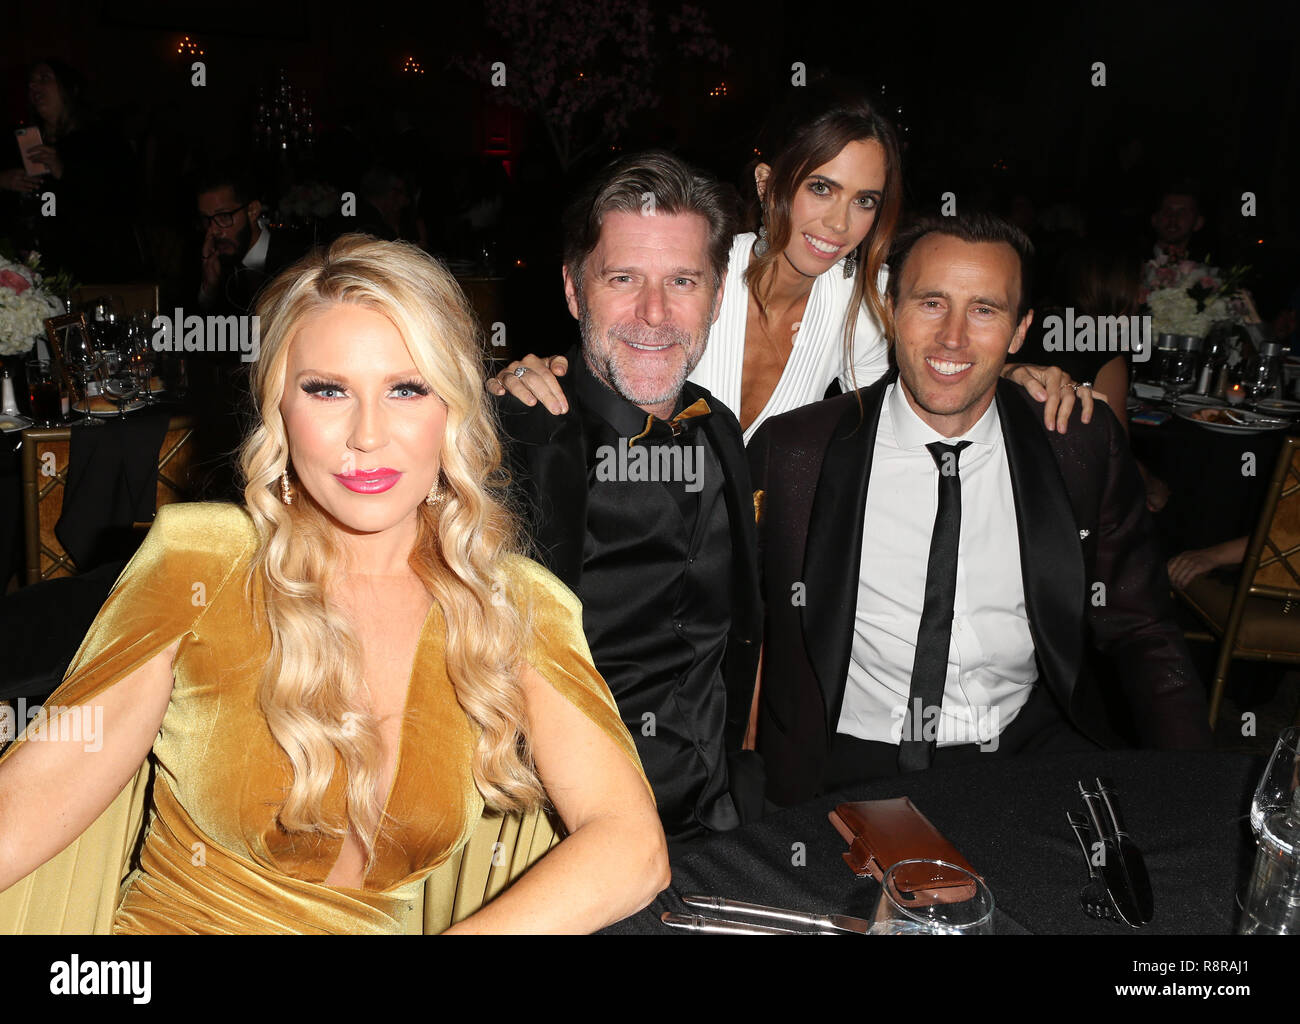 Gretchen Rossi And Slade Smiley Stock Photos & Gretchen Rossi And